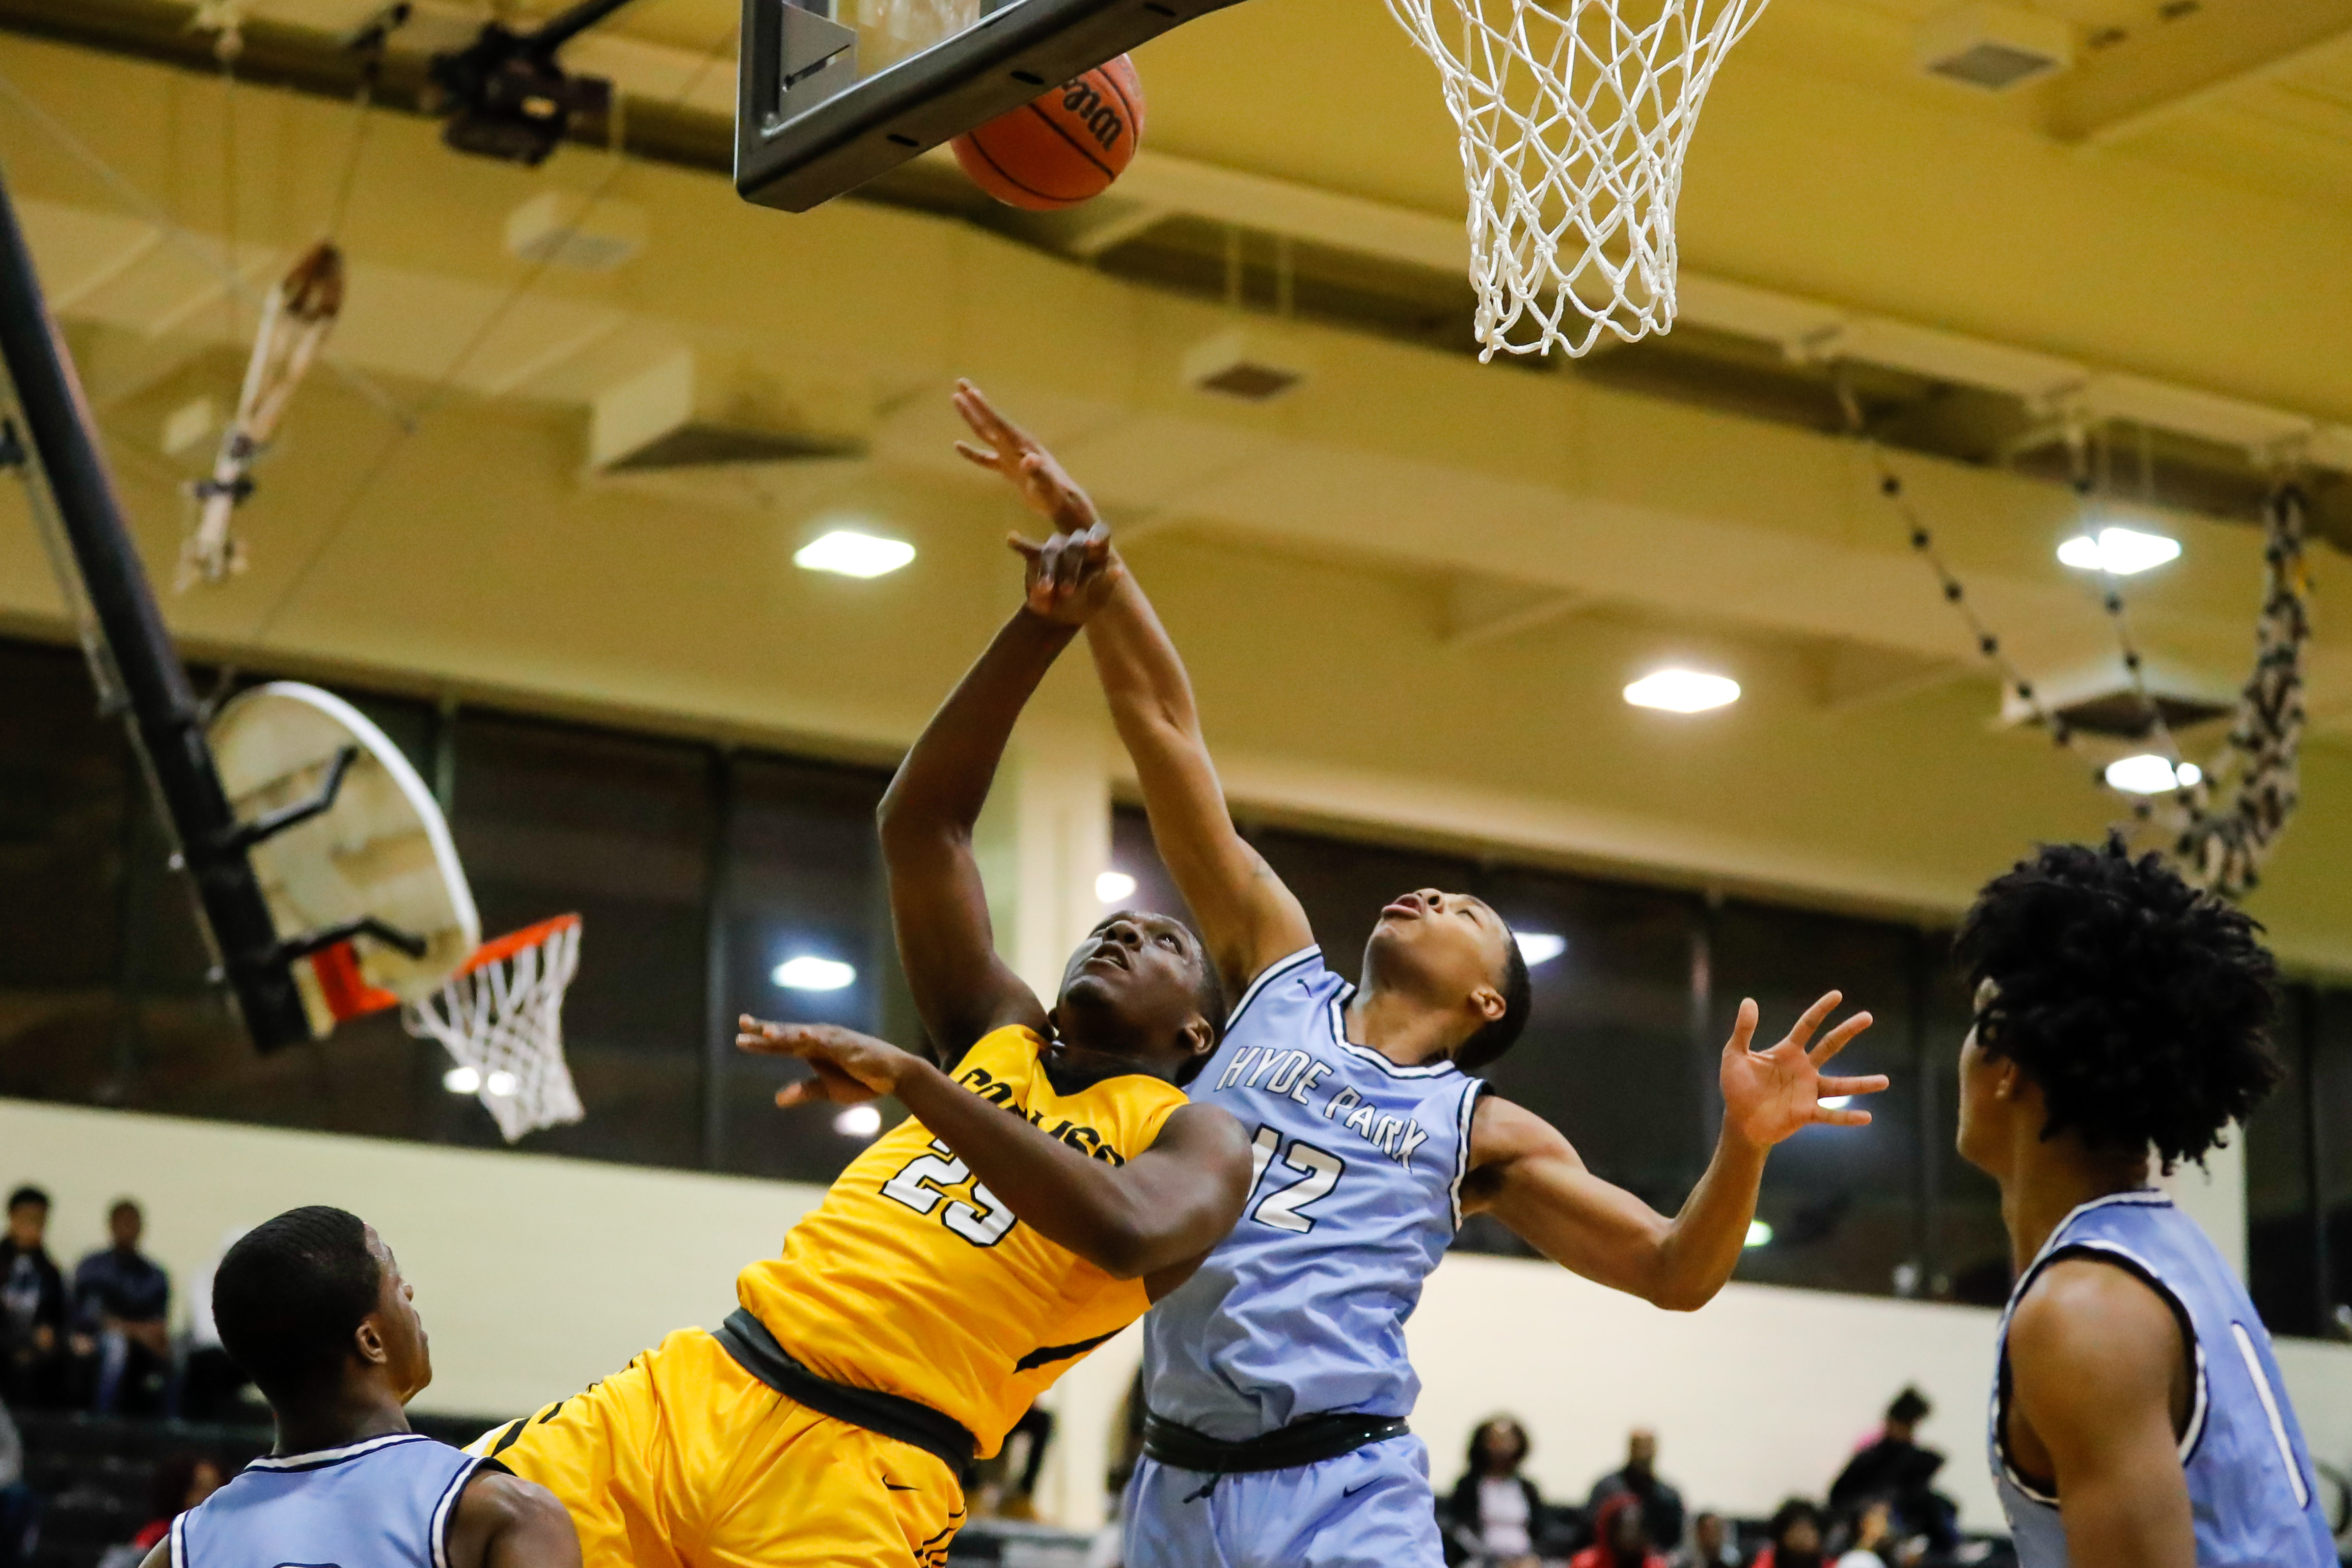 Hyde Park's Maurice Clay (12) goes up to block a shot from Corliss's Jayden Williams (25).